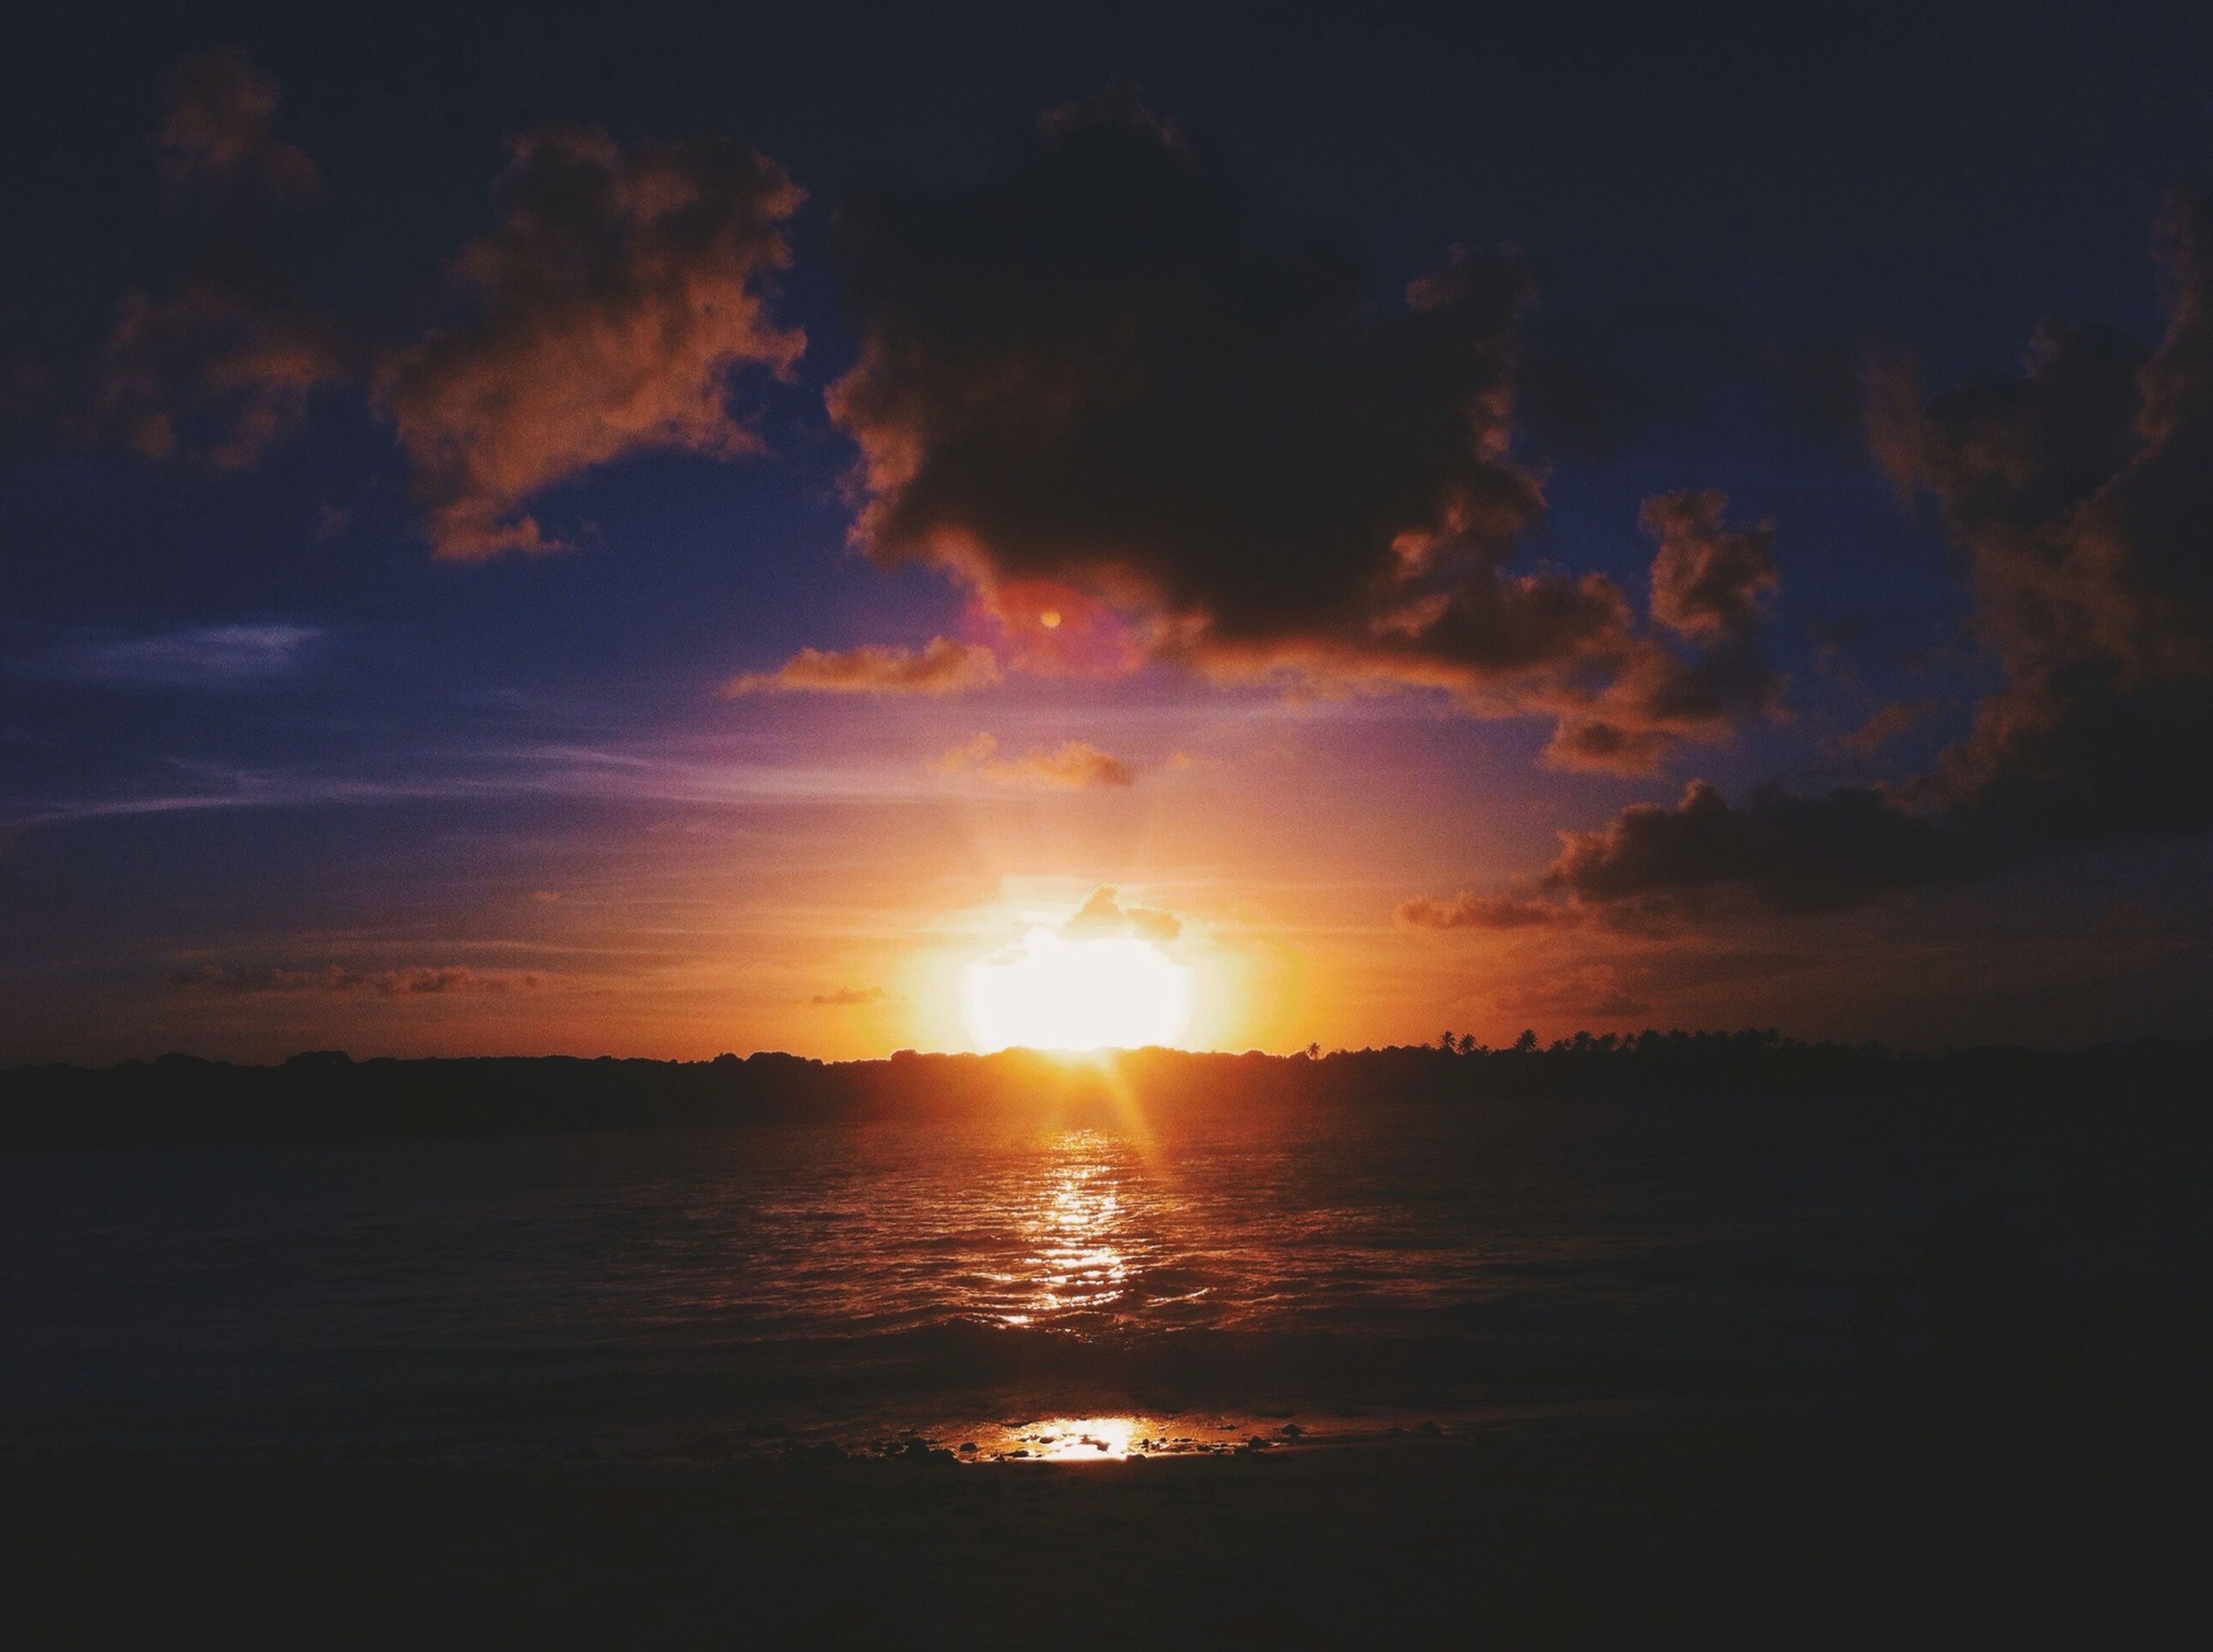 sunset, sun, scenics, tranquil scene, water, tranquility, beauty in nature, sky, sea, silhouette, reflection, idyllic, nature, sunlight, orange color, cloud - sky, sunbeam, cloud, waterfront, horizon over water